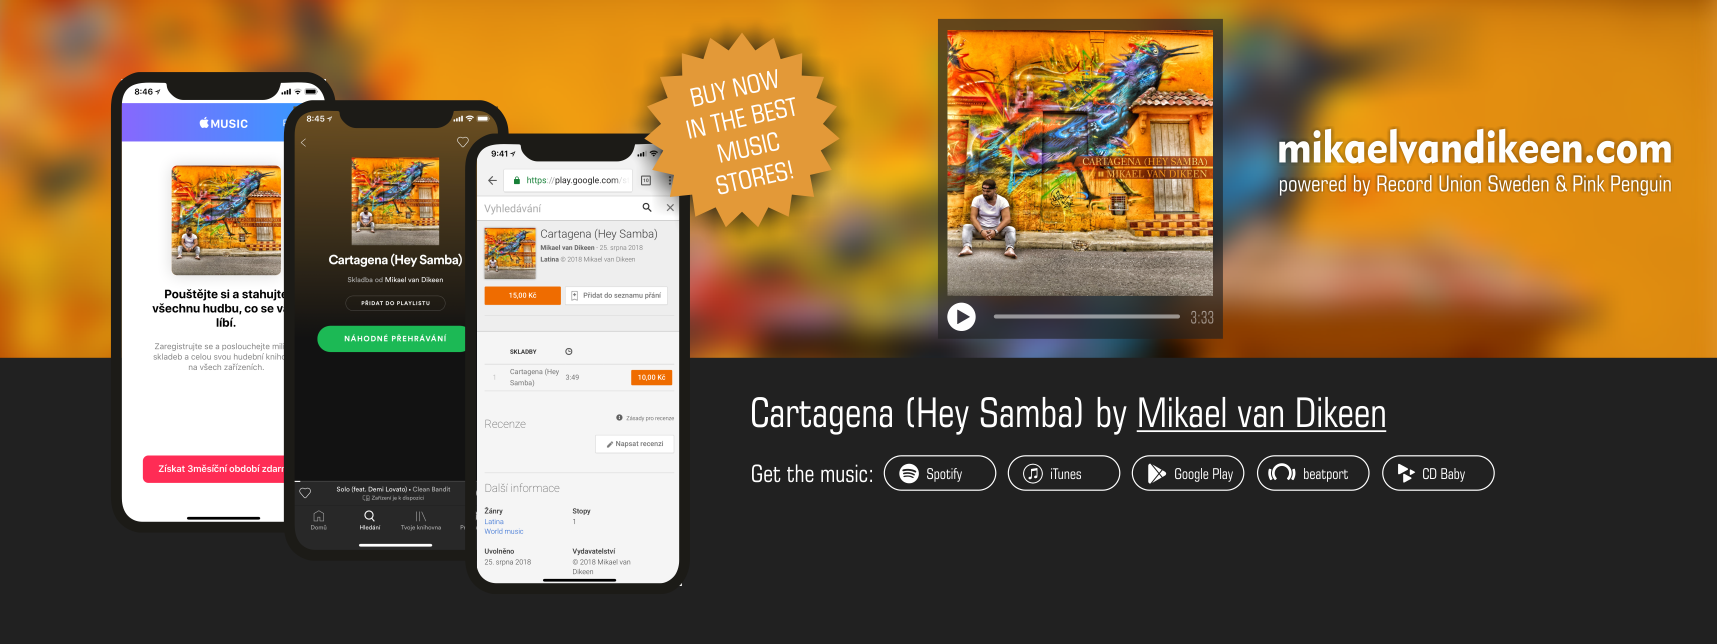 Mikael van Dikeen - Cartagena - Hey Samba - buy now